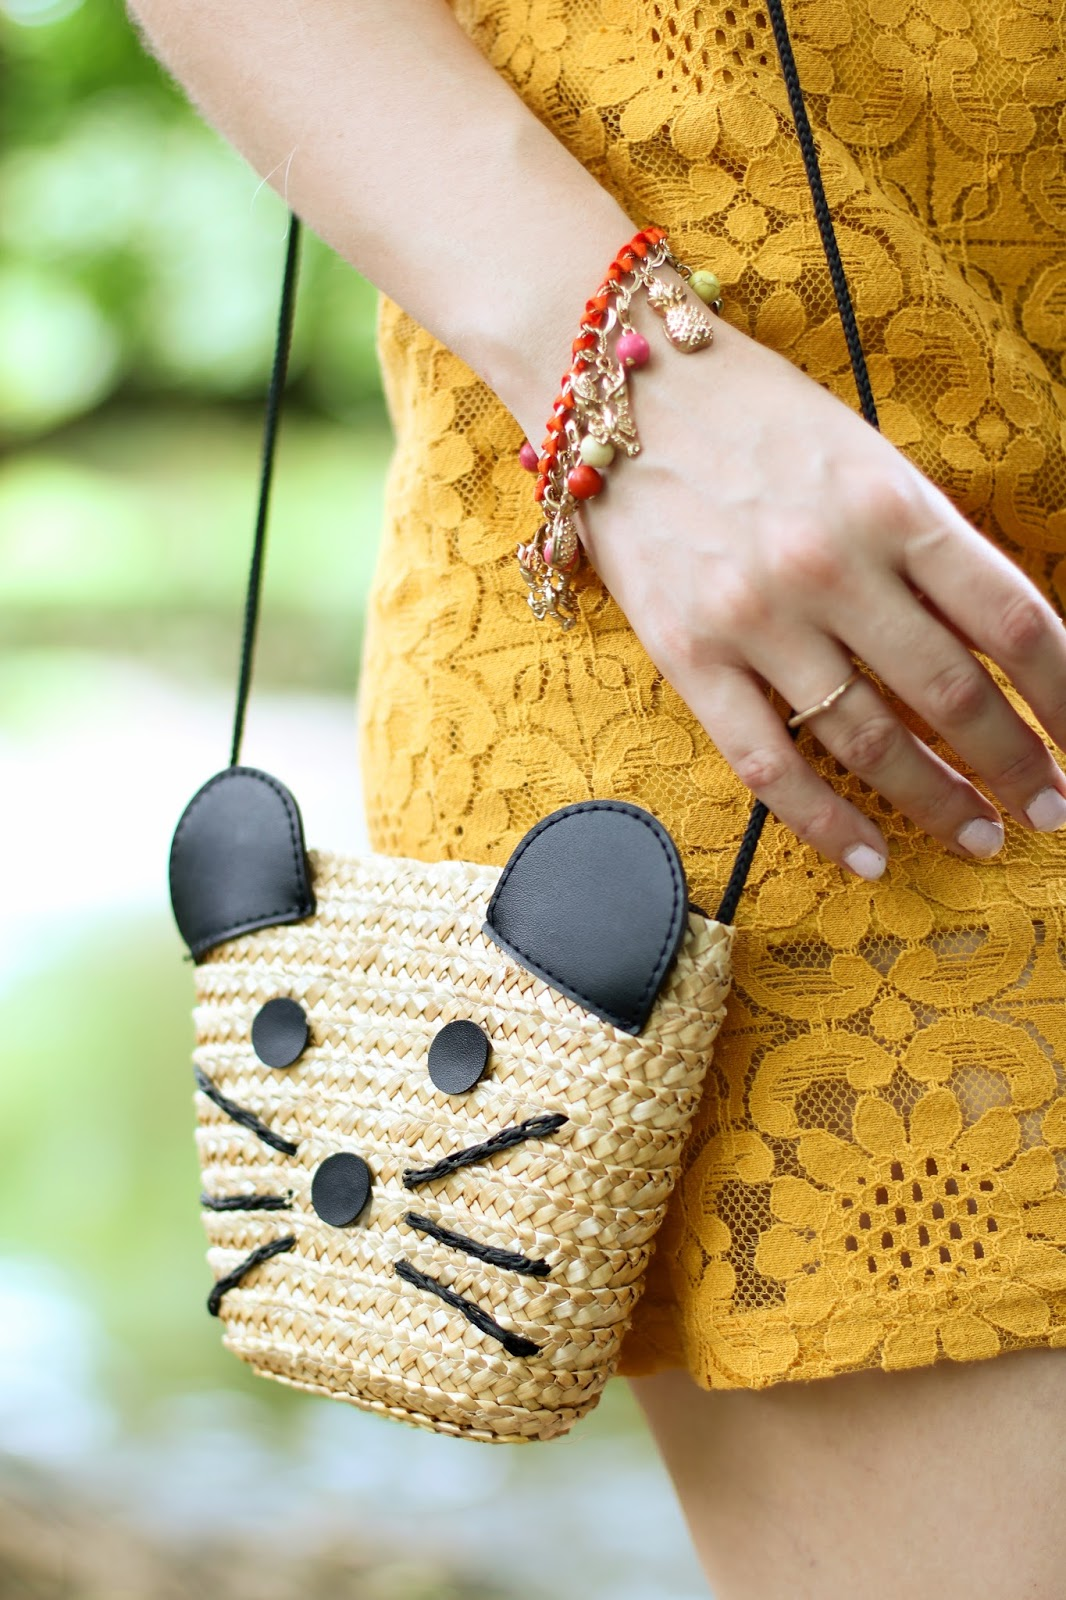 Loving this adorable mouse shaped purse!